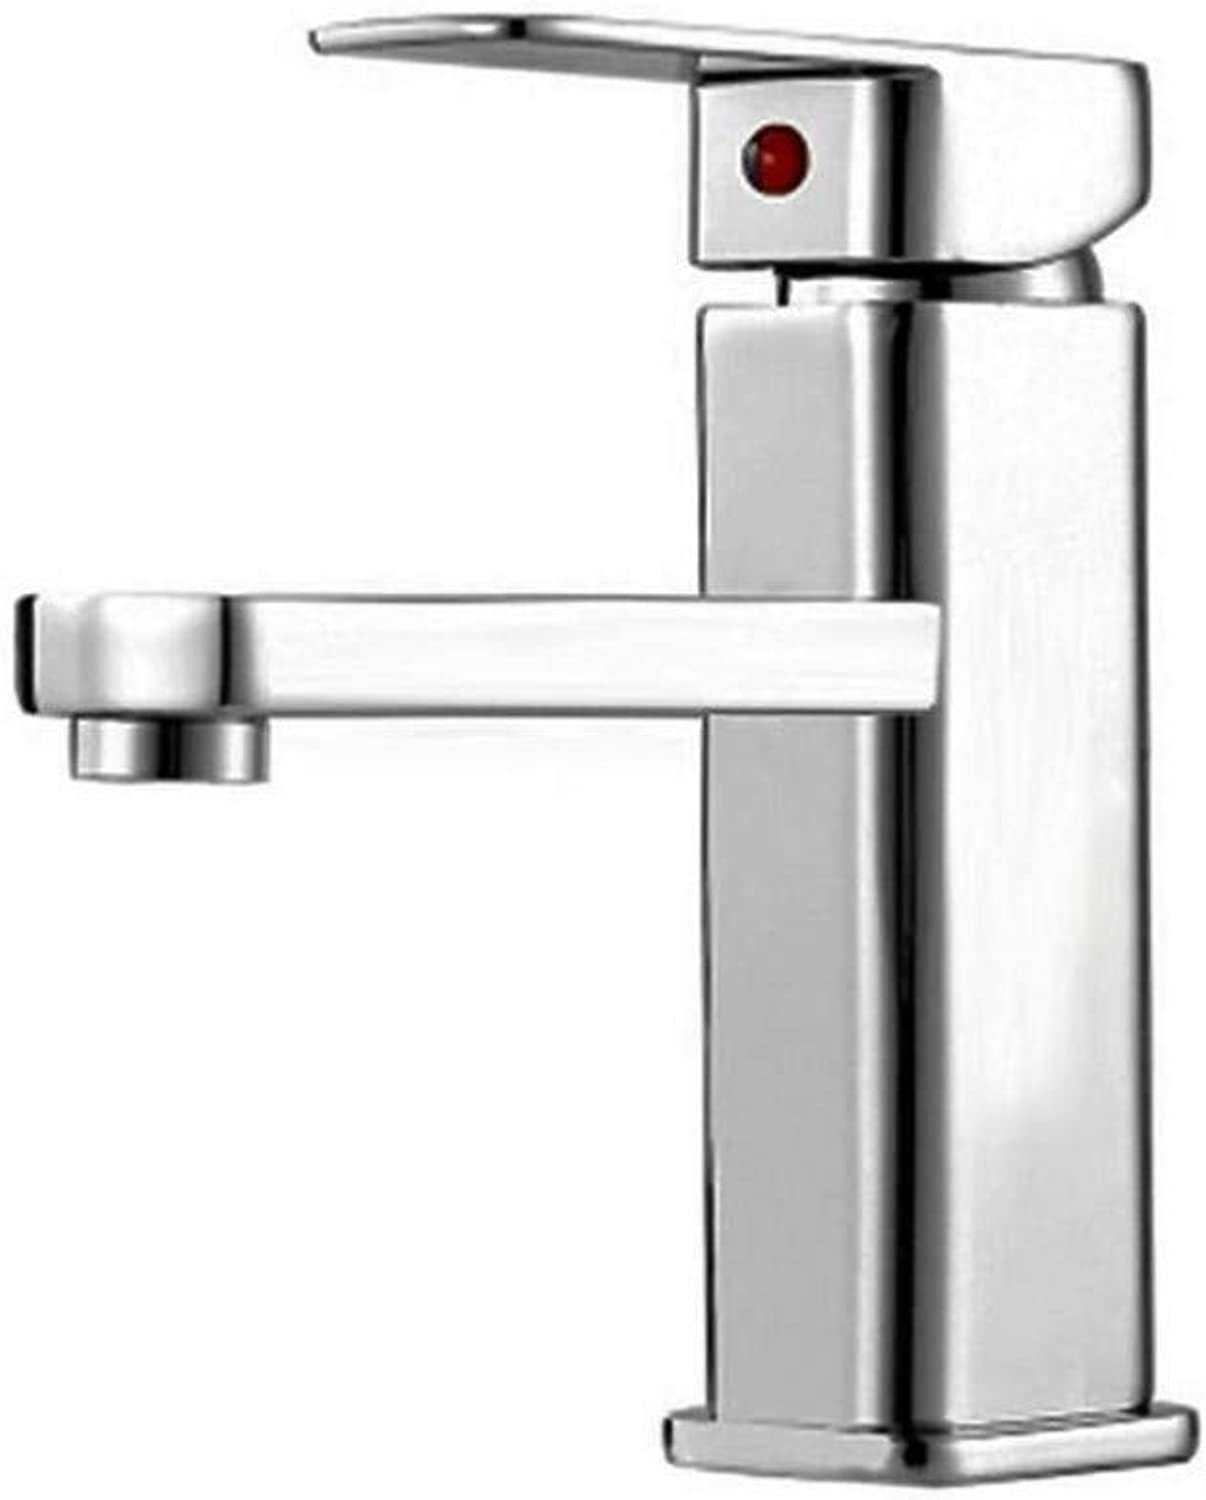 Bathroom Faucet Copper Hot and Cold Kitchen Sink Taps Kitchen Faucet Copper Hot and Cold Faucet Basin Washbasin